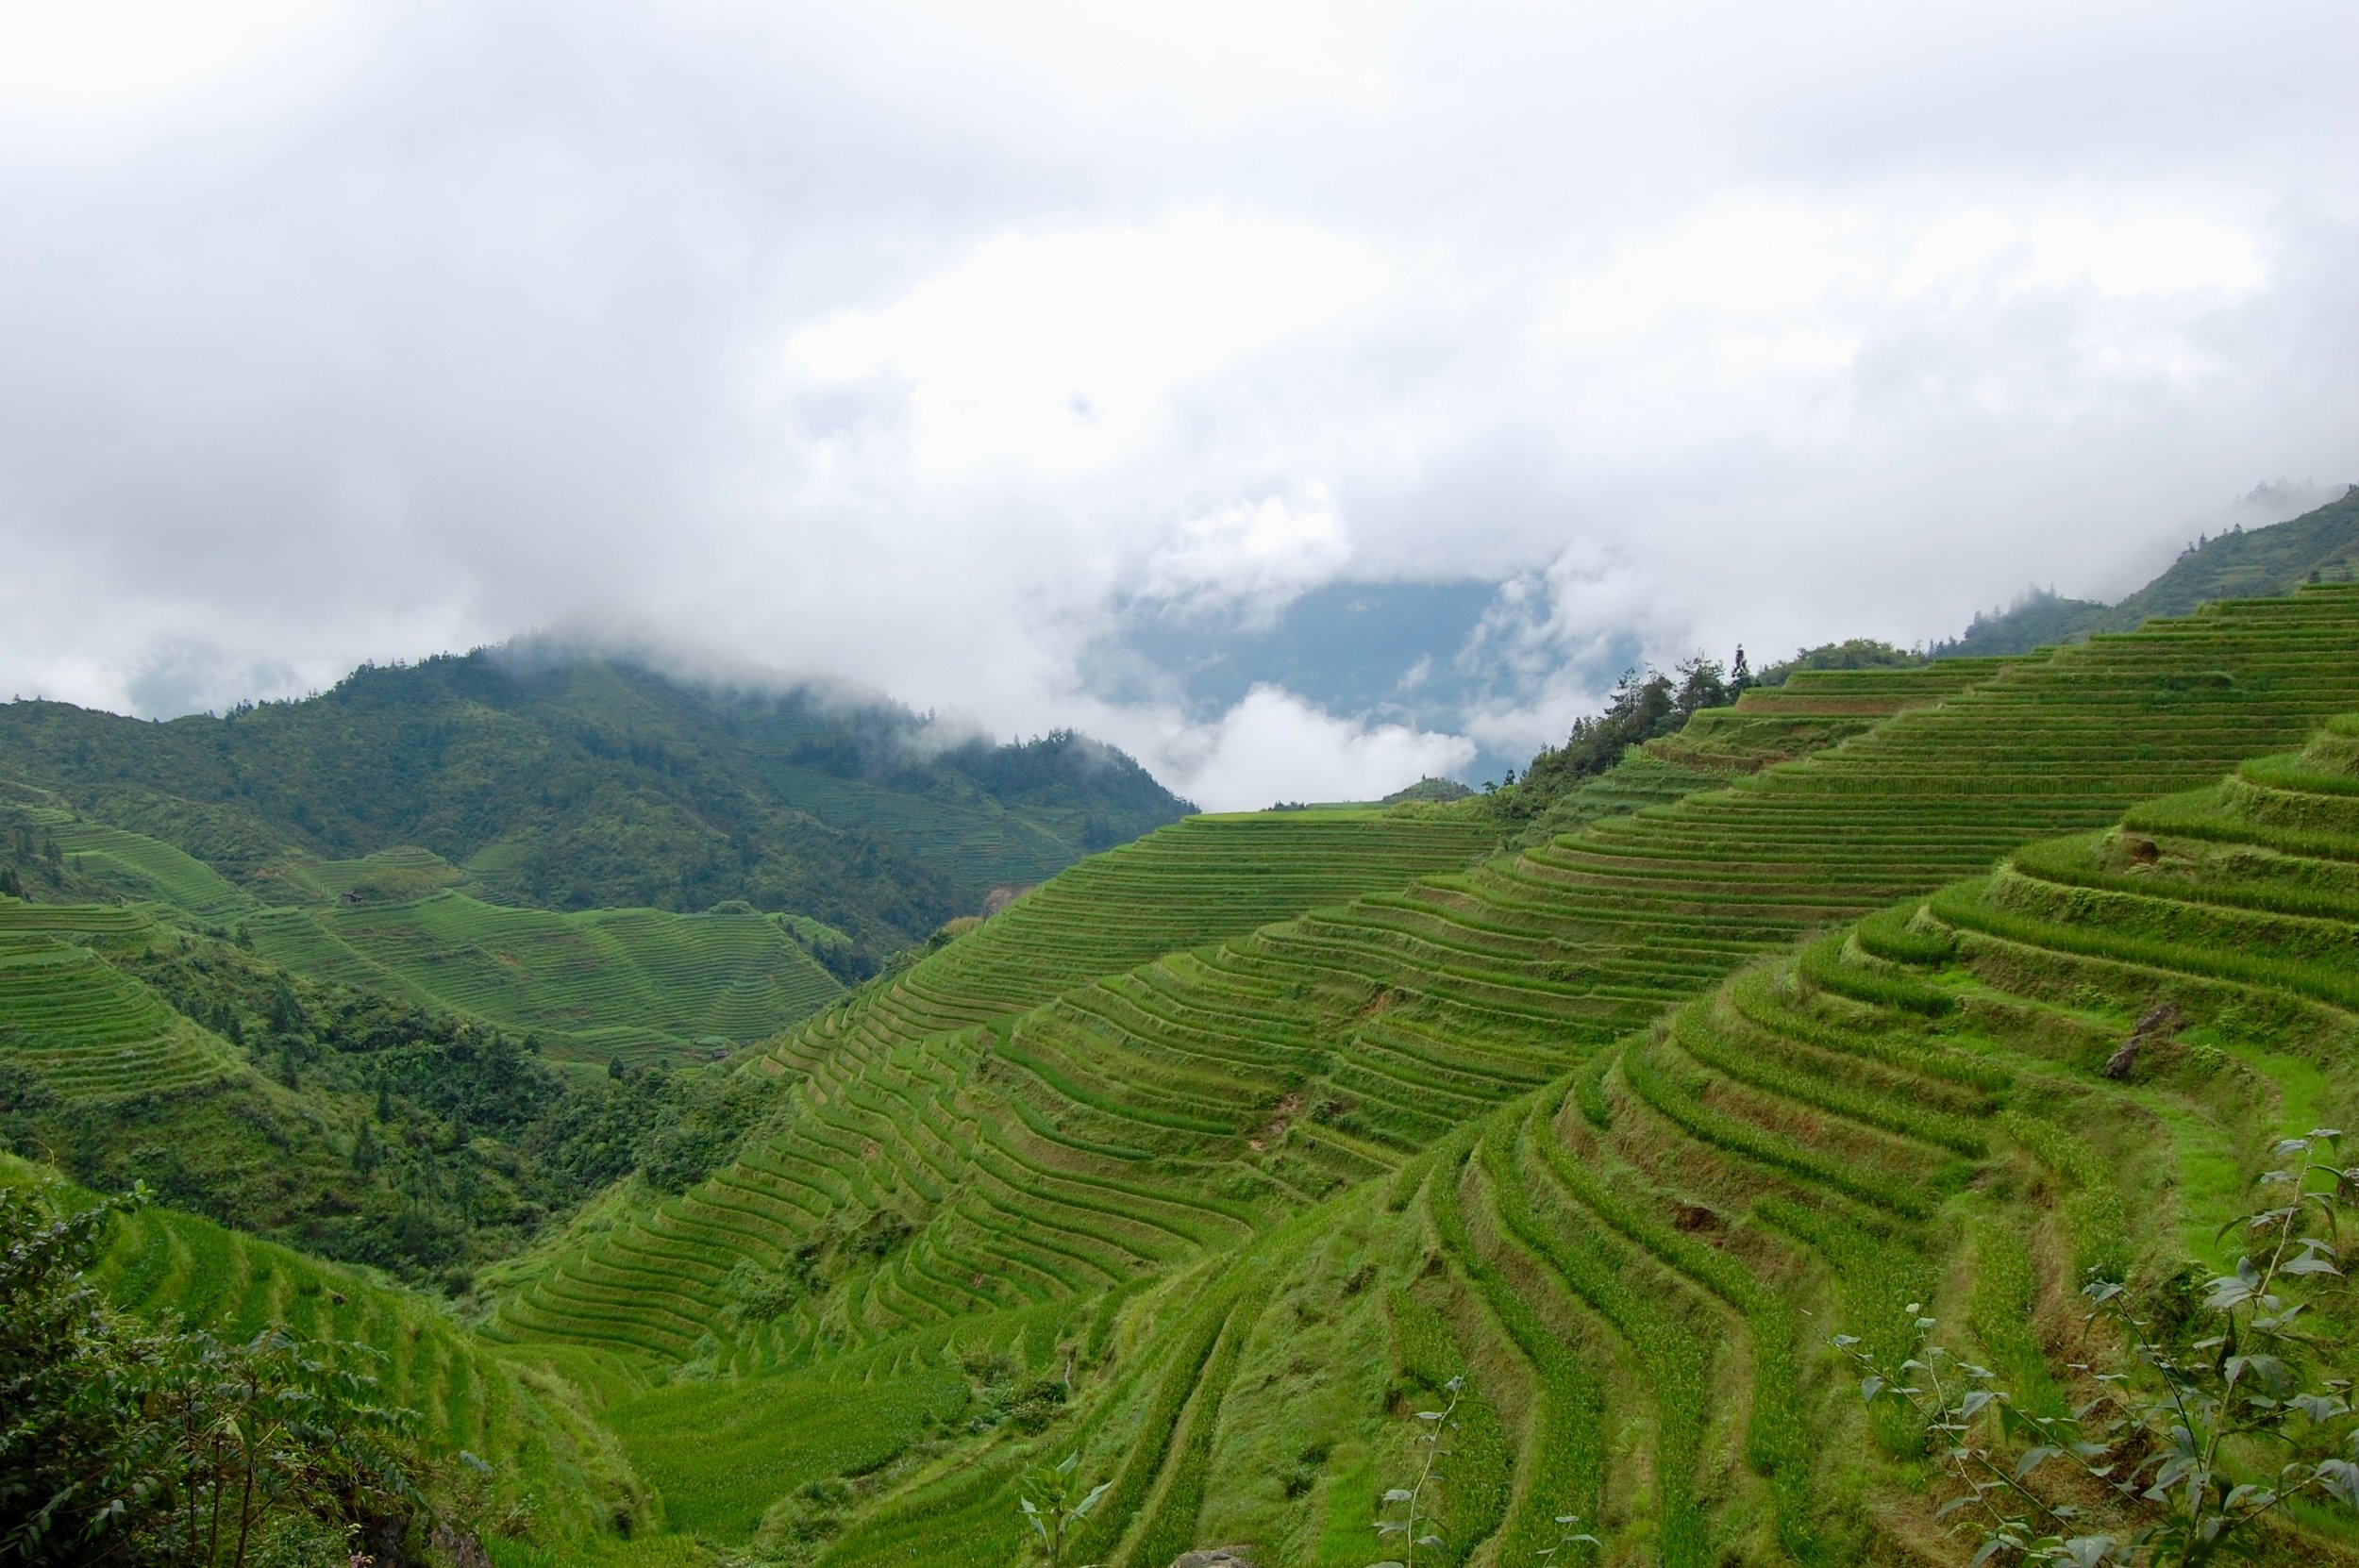 The Longsheng Rice Terraces (Guangxi, China)